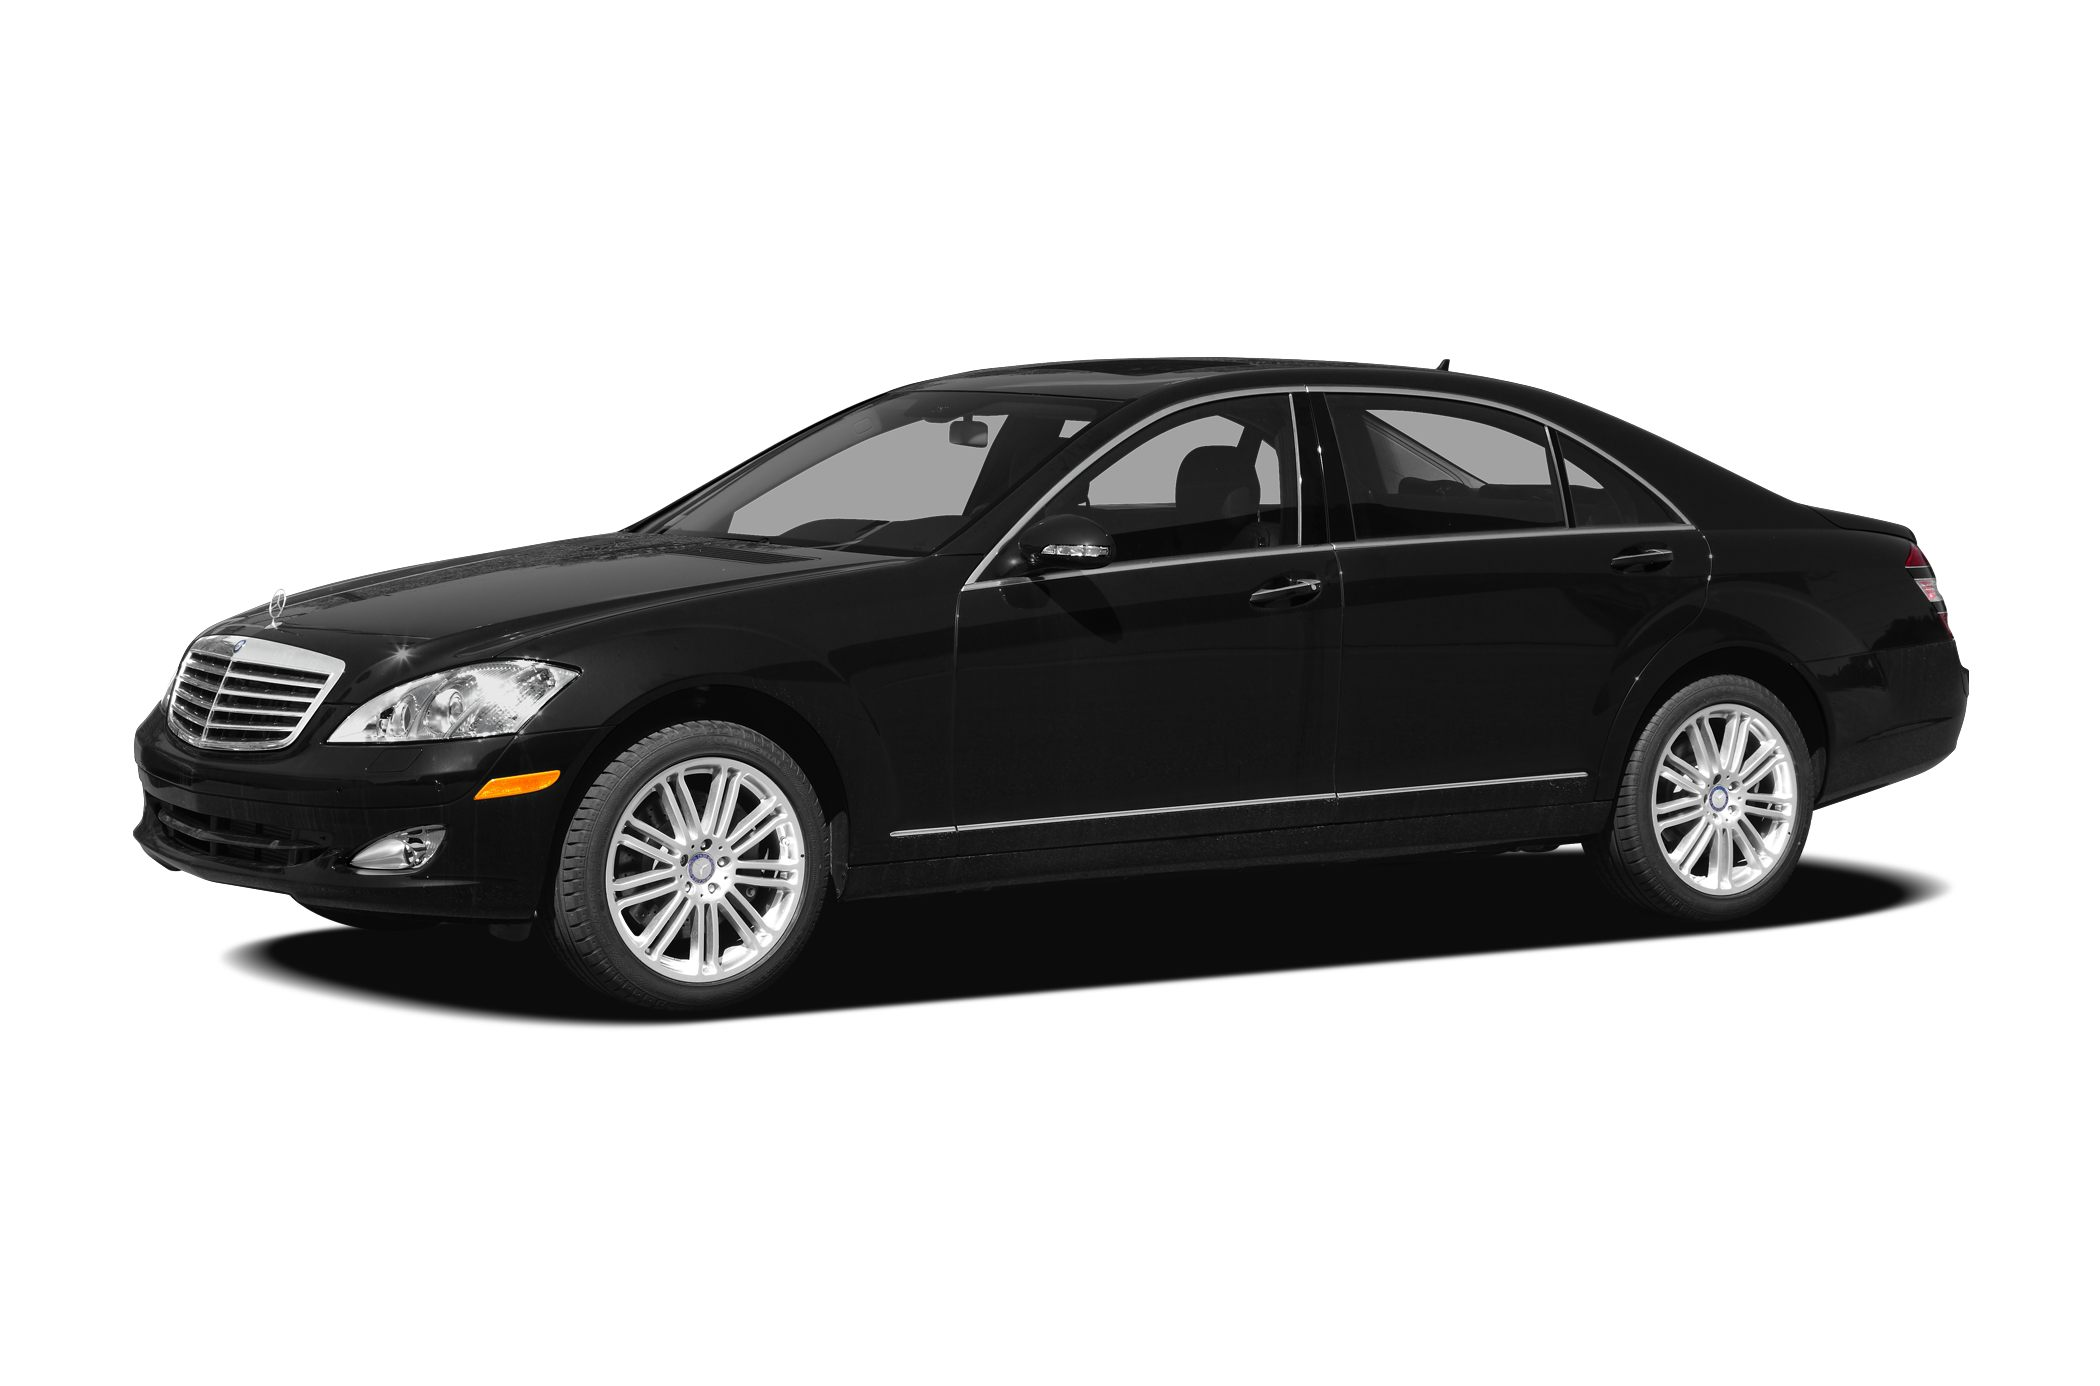 2008 Mercedes-Benz S-Class S550 4MATIC Sedan for sale in Stone Mountain for $33,800 with 103,667 miles.